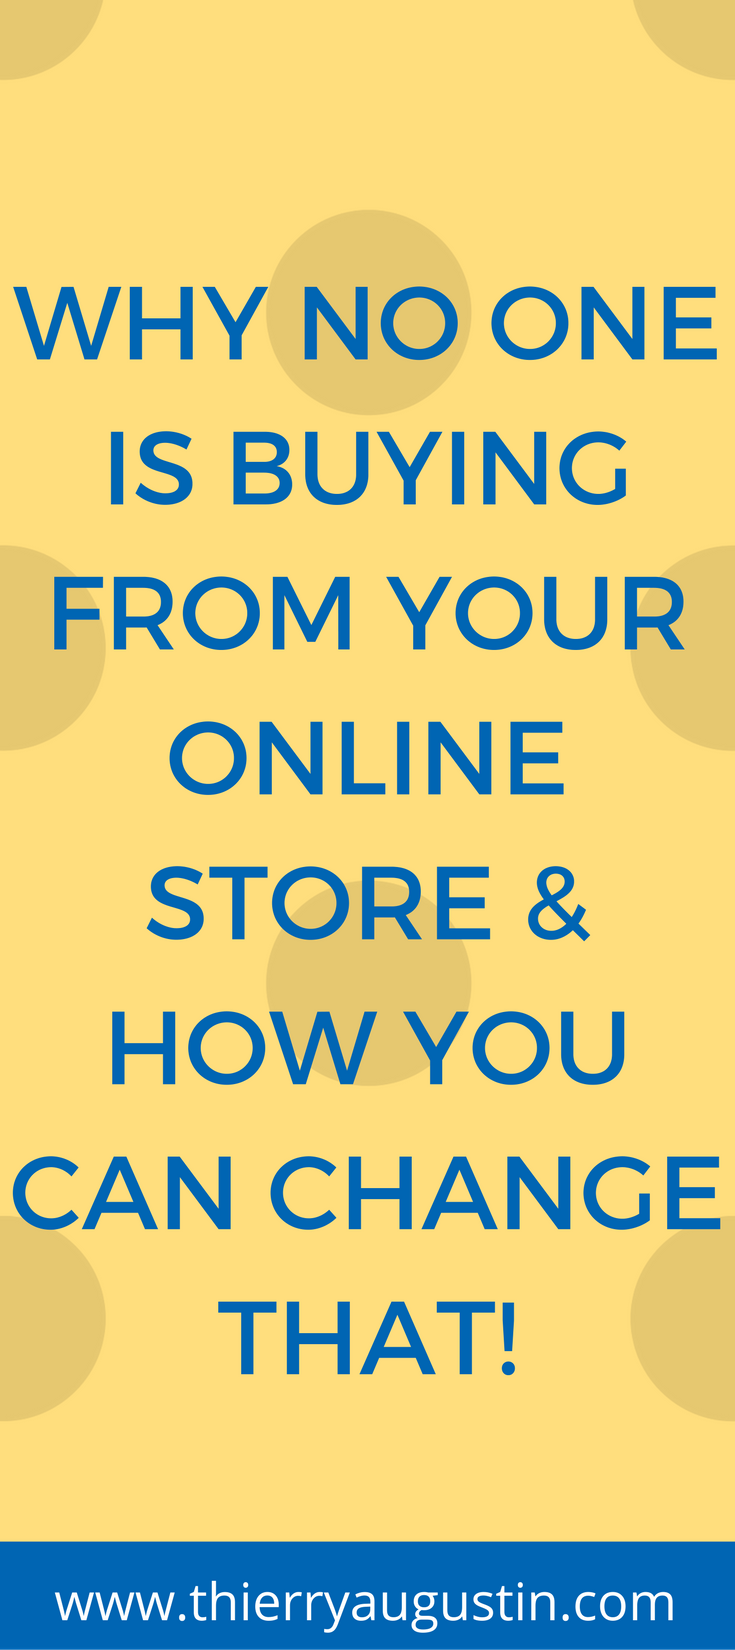 Online Store | Online Shop | How to make more money | How to get more sales | Ecommerce marketing tips | Business Strategist |Email Marketing | List Building| Ecommerce product descriptions | copywriting | copy that sells